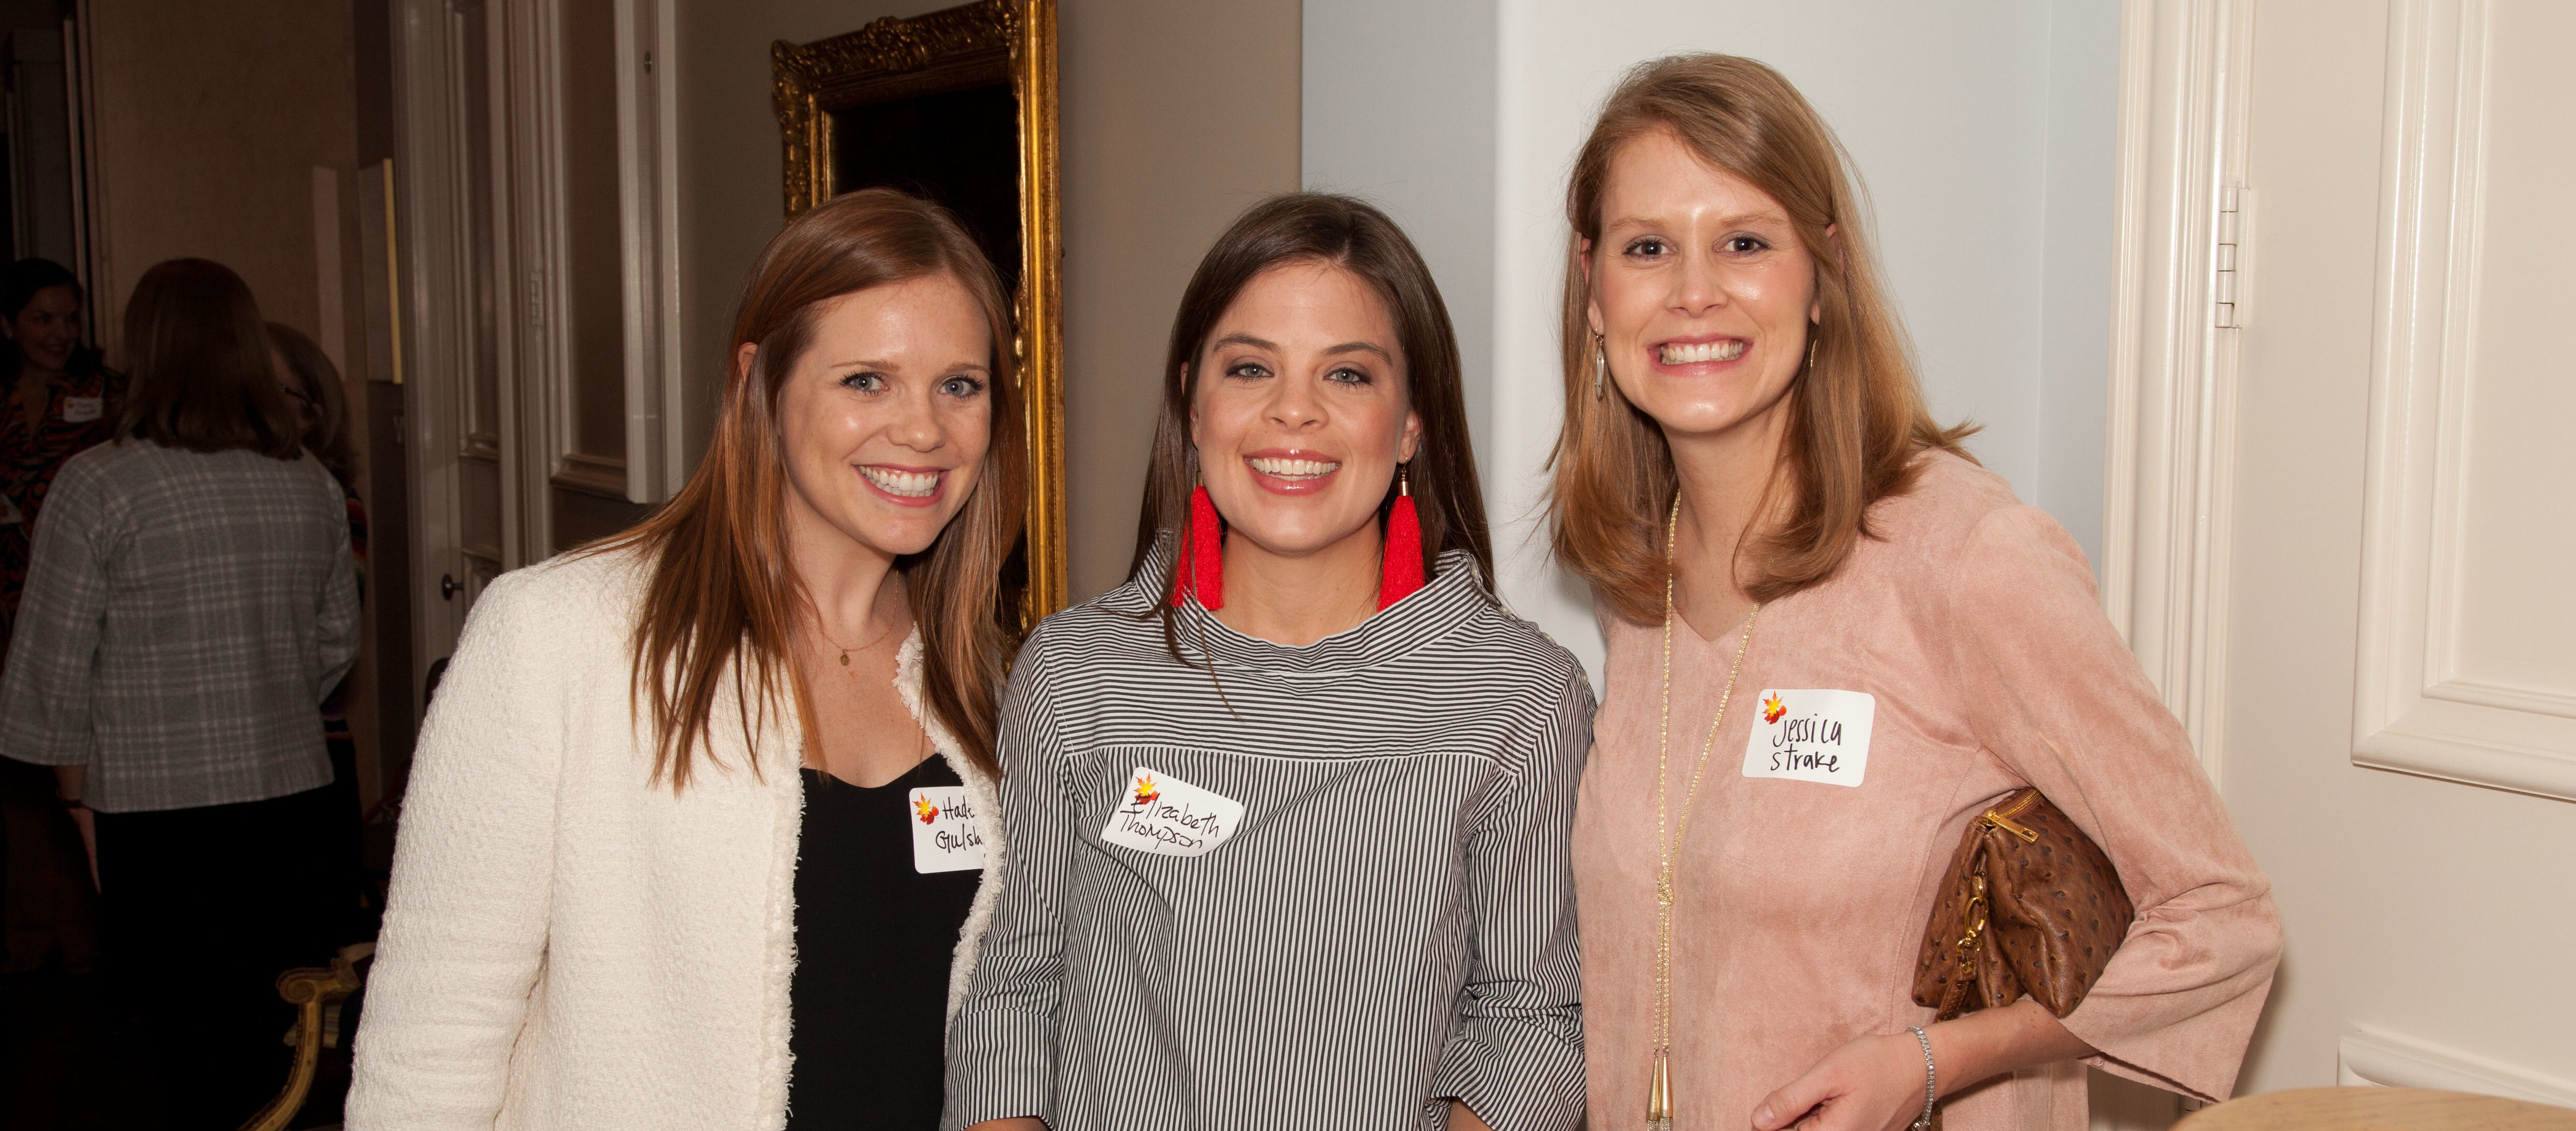 Haden Gulsby, Elizabeth Walsh, and Jessica Strake are all smiles at the Fall Feast at Deanne White's lovely home!